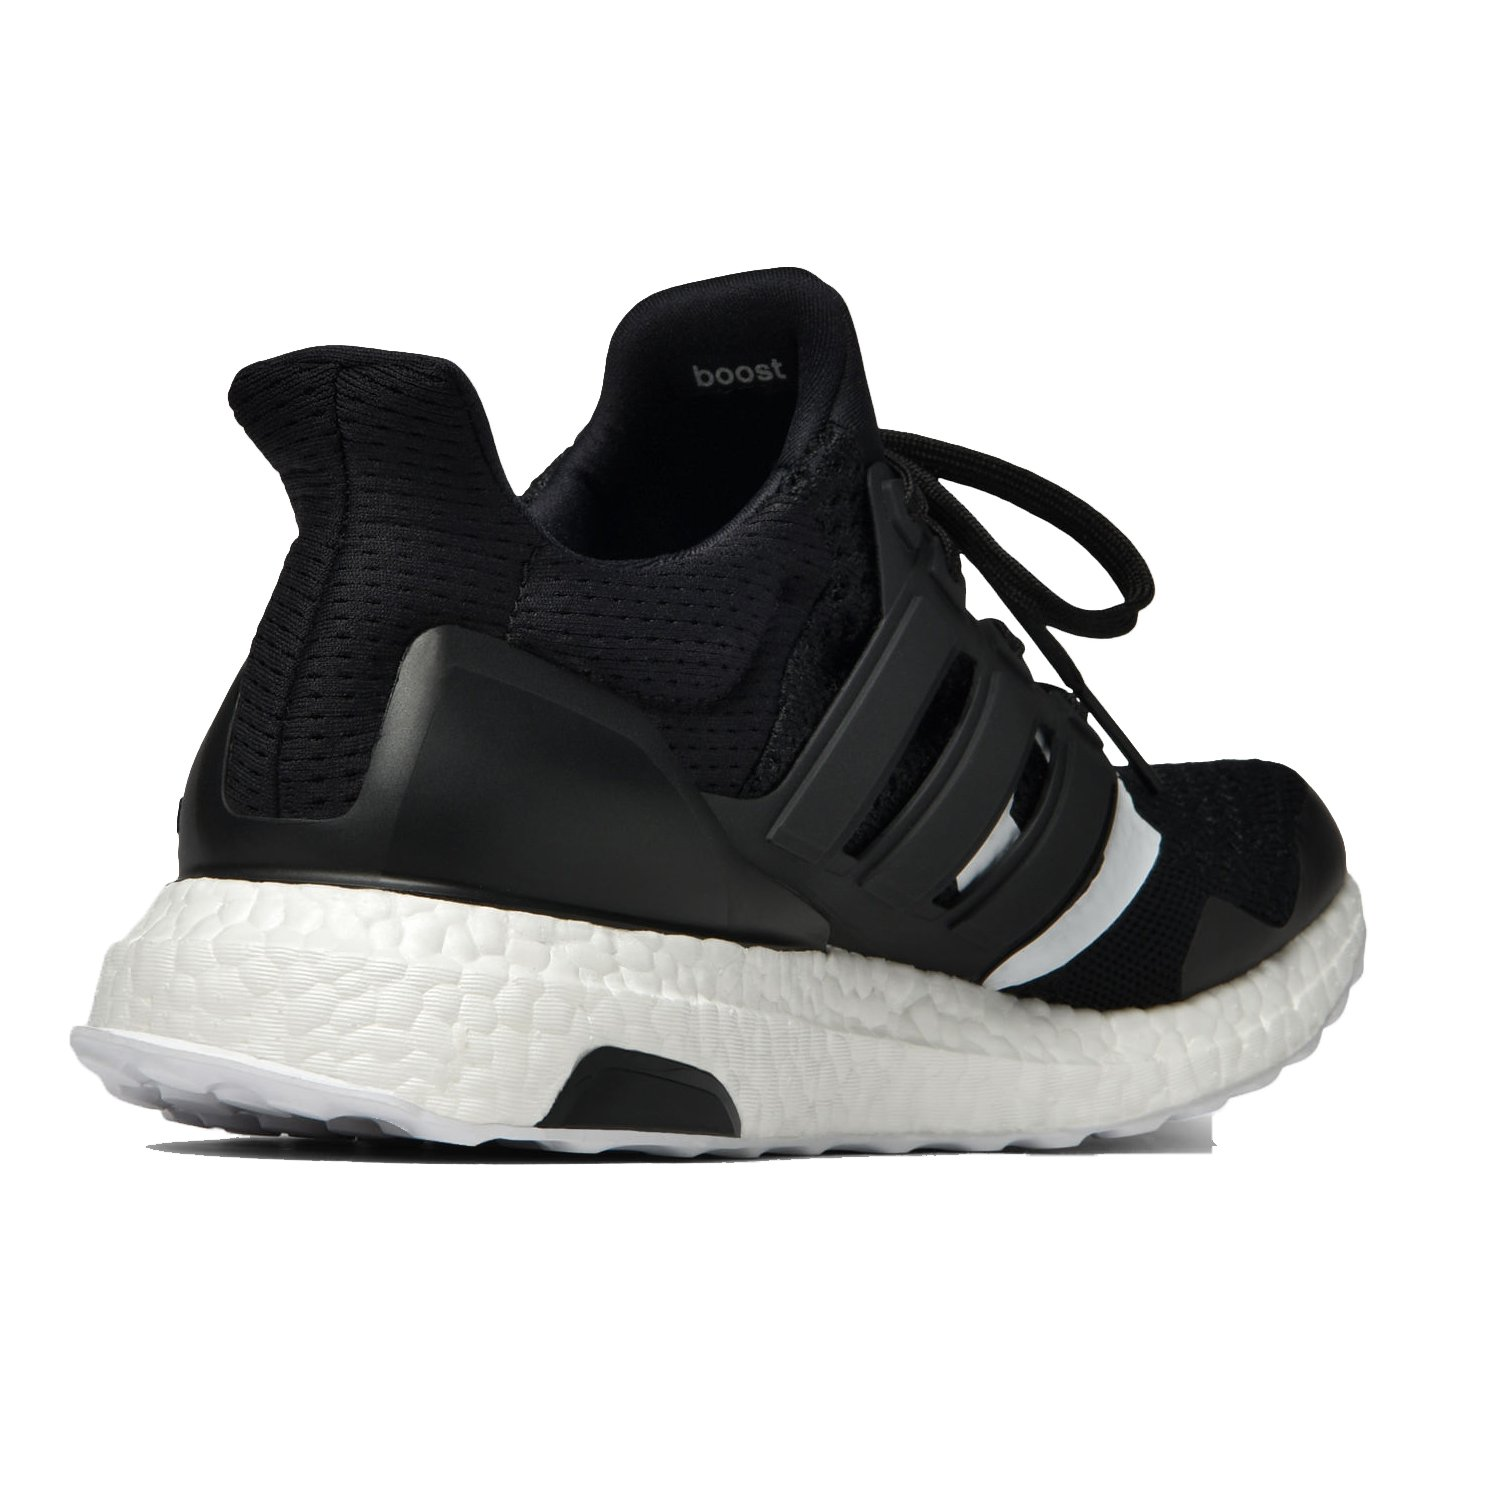 4c88be957b406 adidas Ultraboost Undftd  Undefeated  - B22480 -  Amazon.co.uk  Shoes   Bags